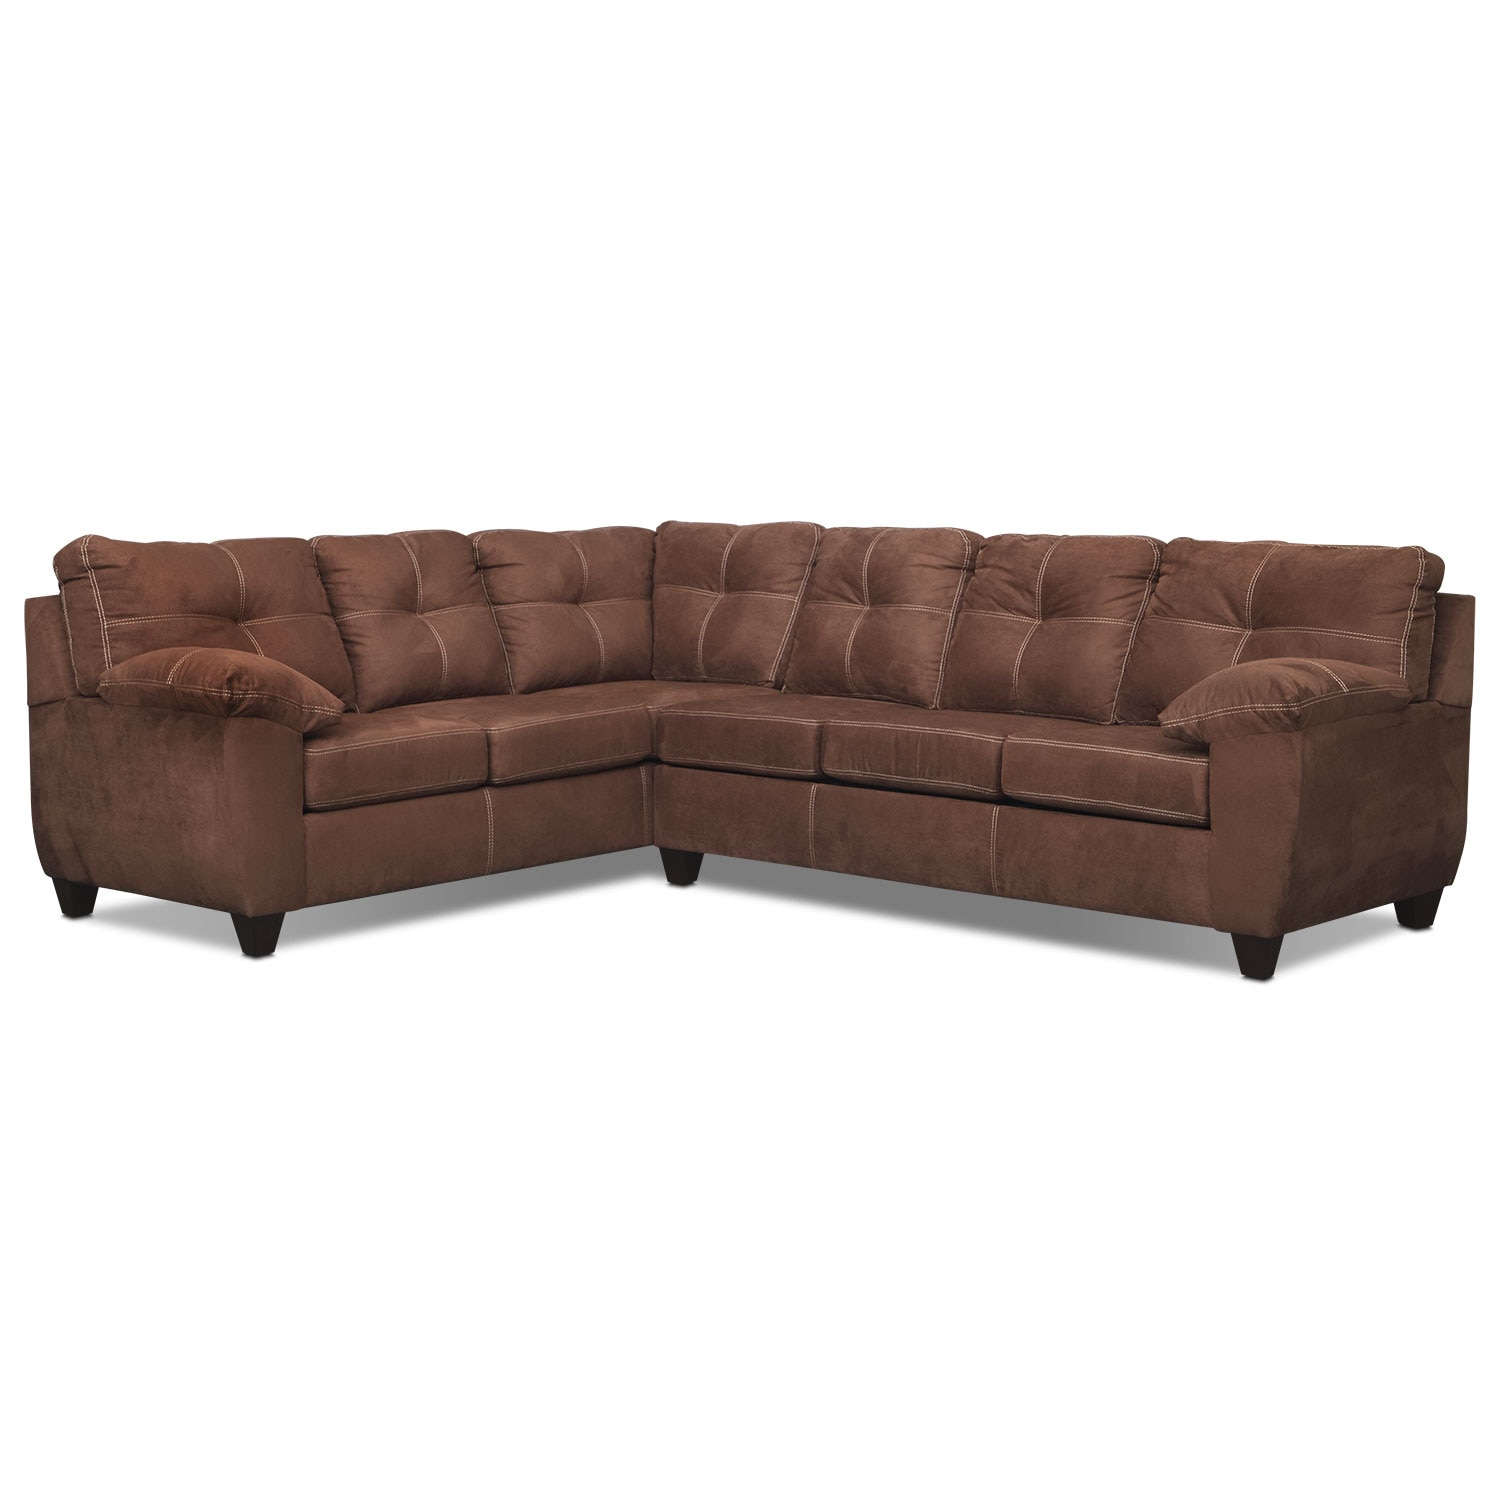 Living Room Furniture - Rialto Coffee 2 Pc. Sectional with Right-Facing Innerspring Sleeper